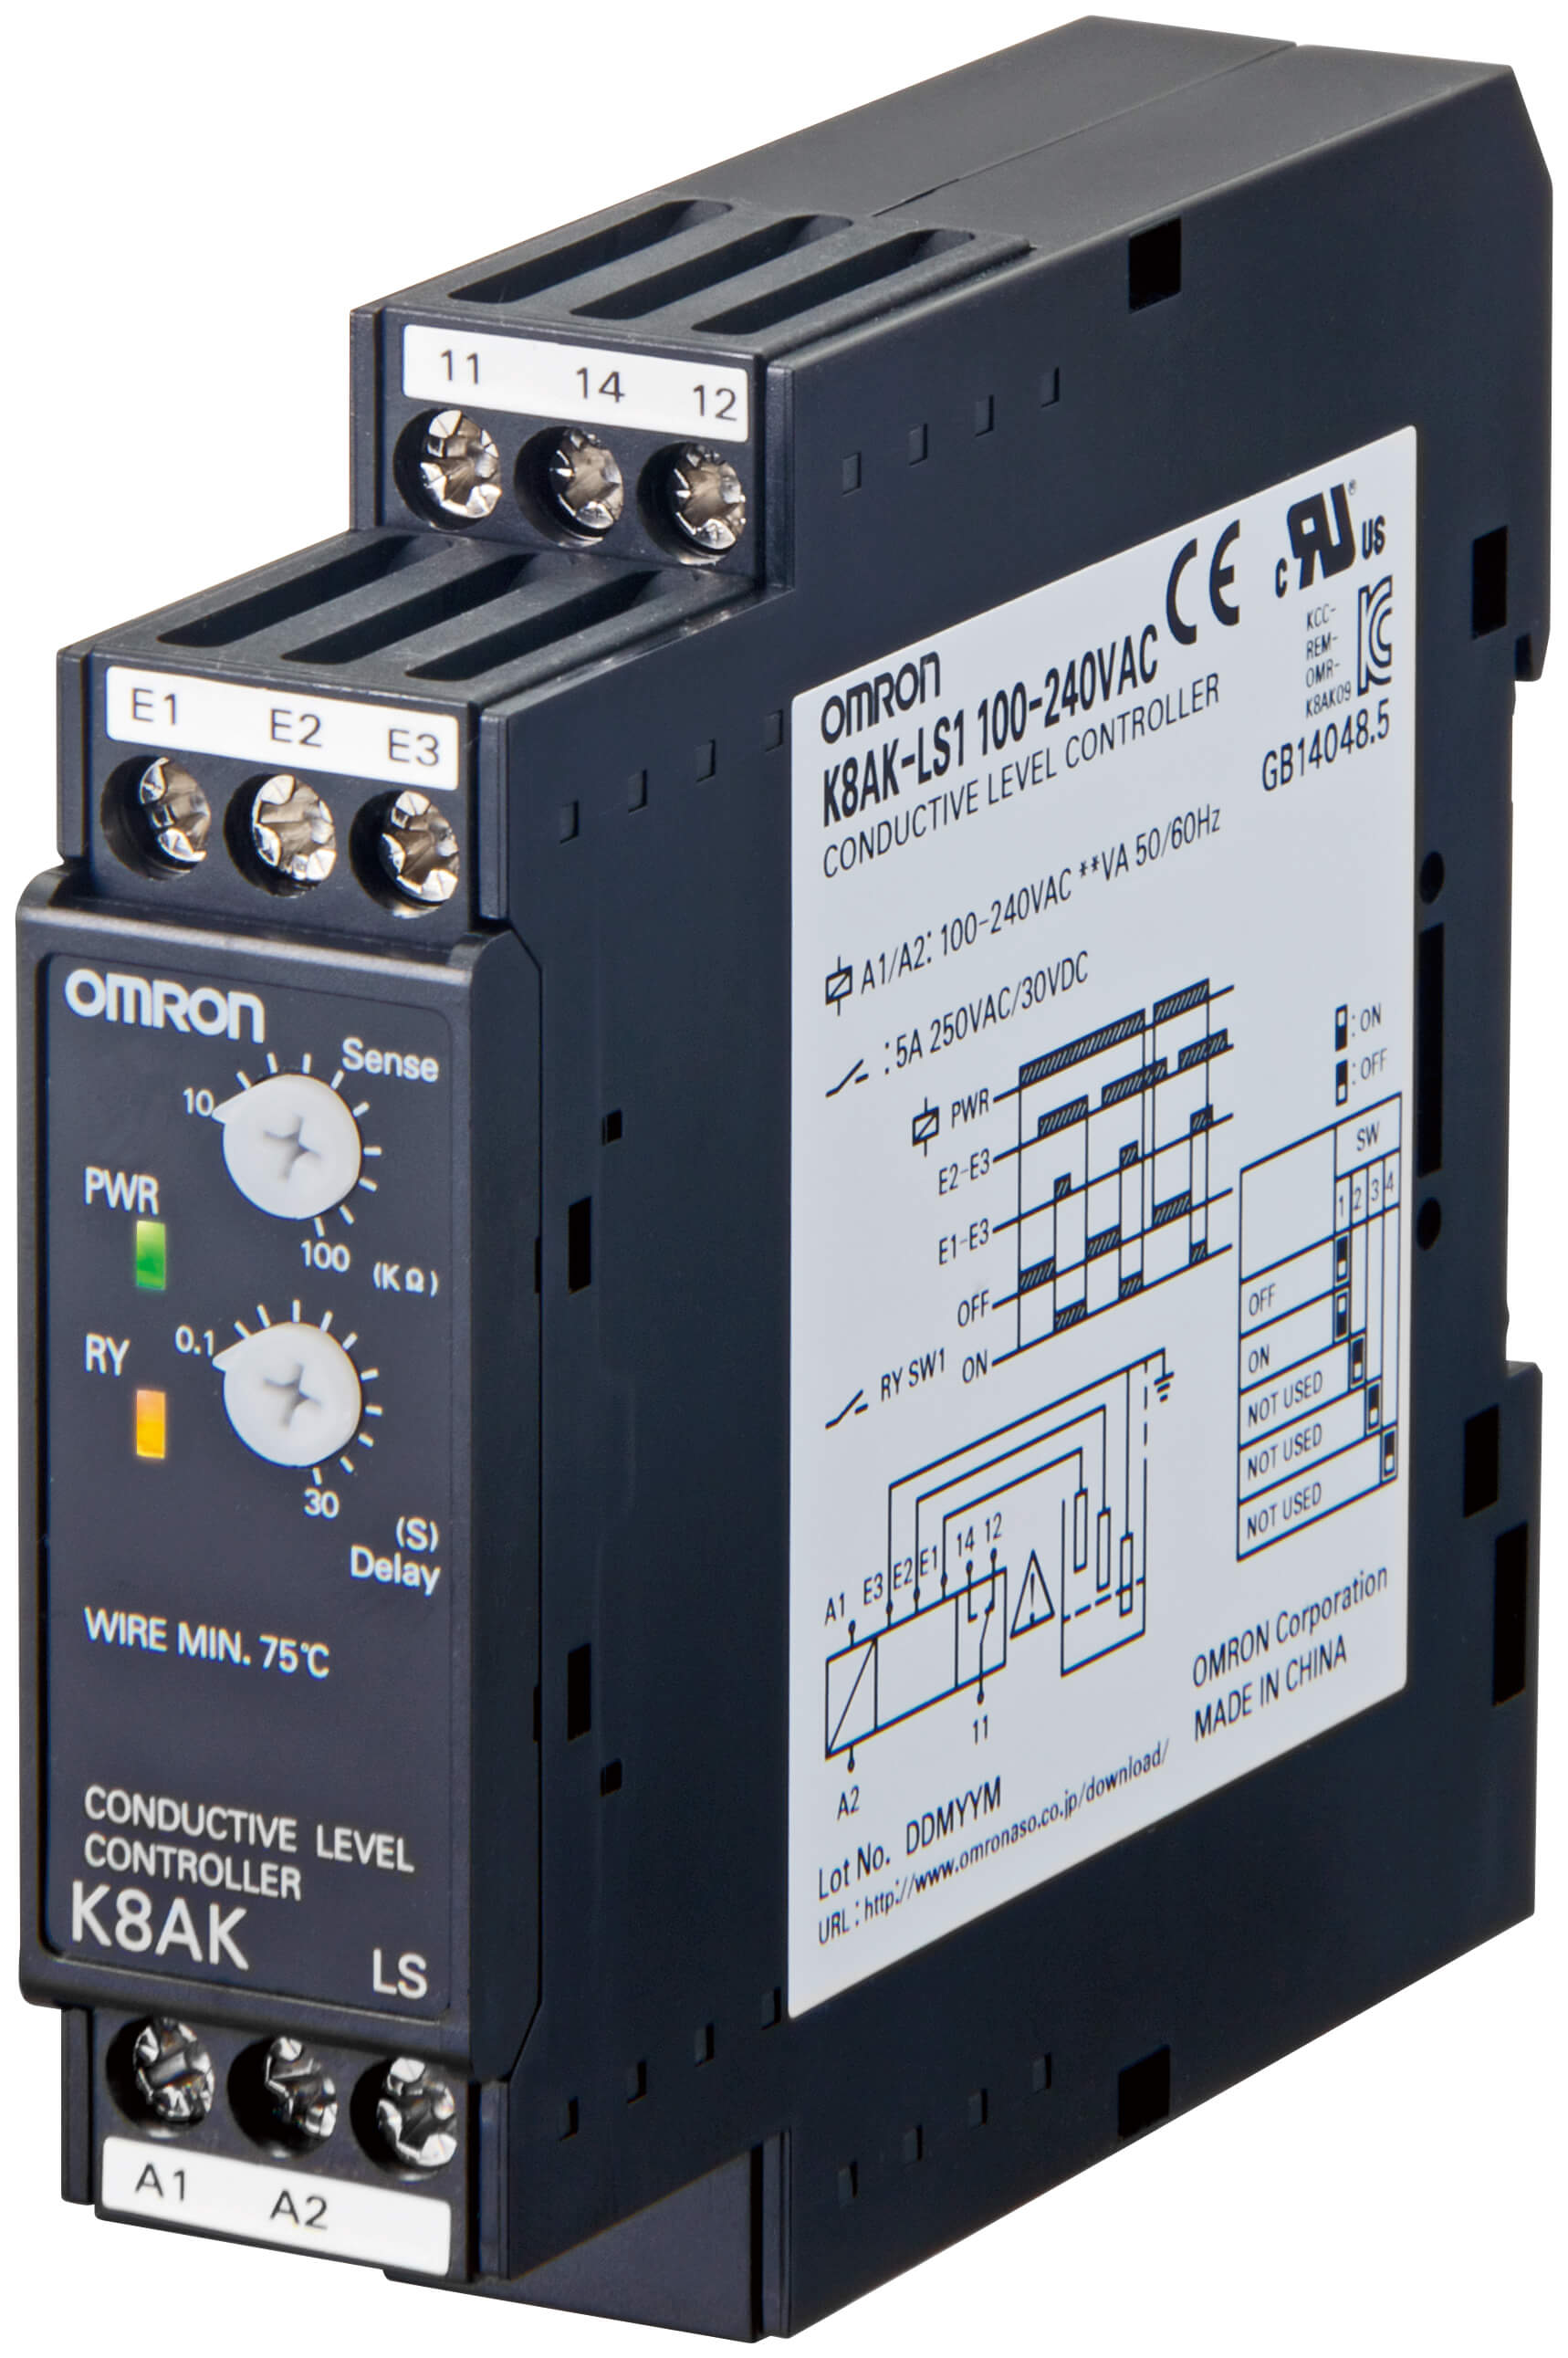 Wiring Diagram Water Level Control Omron : Omron water level controller relay ready remote start